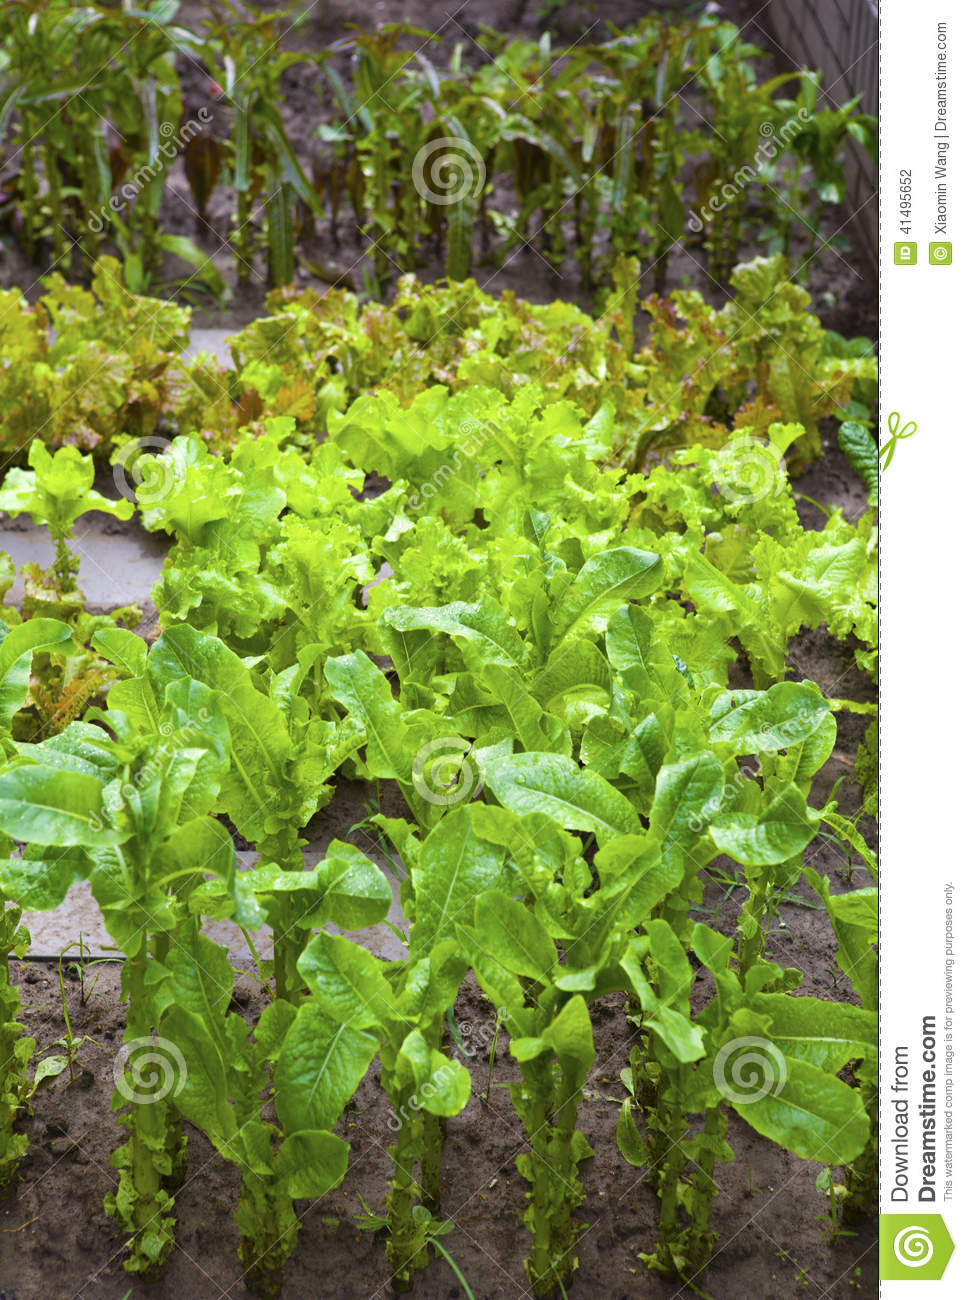 A Vegetable Garden Stock Photo Image 41495652